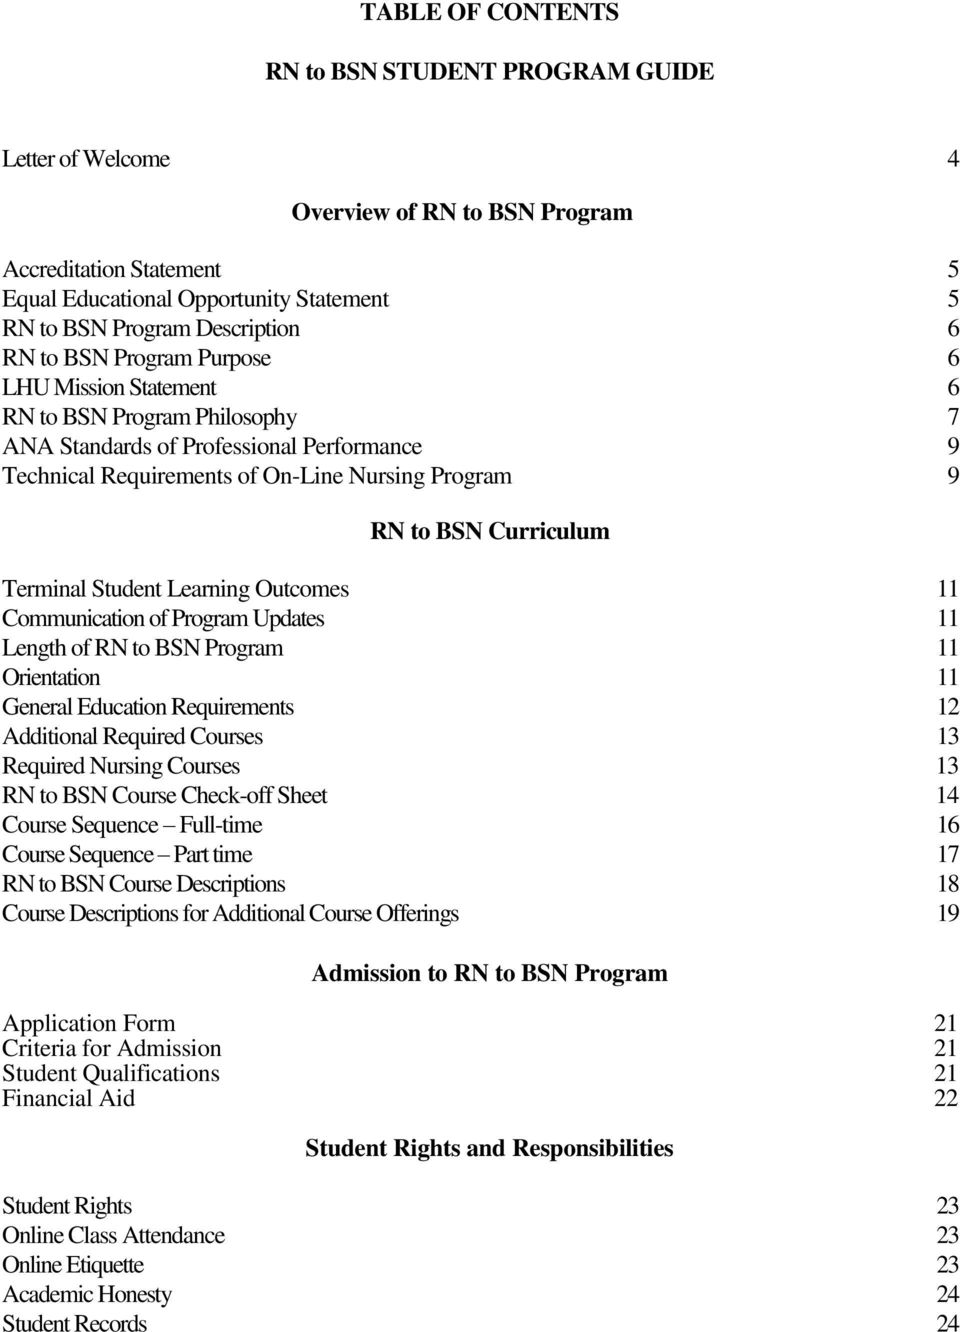 Terminal Student Learning Outcomes 11 Communication of Program Updates 11 Length of RN to BSN Program 11 Orientation 11 General Education Requirements 12 Additional Required Courses 13 Required